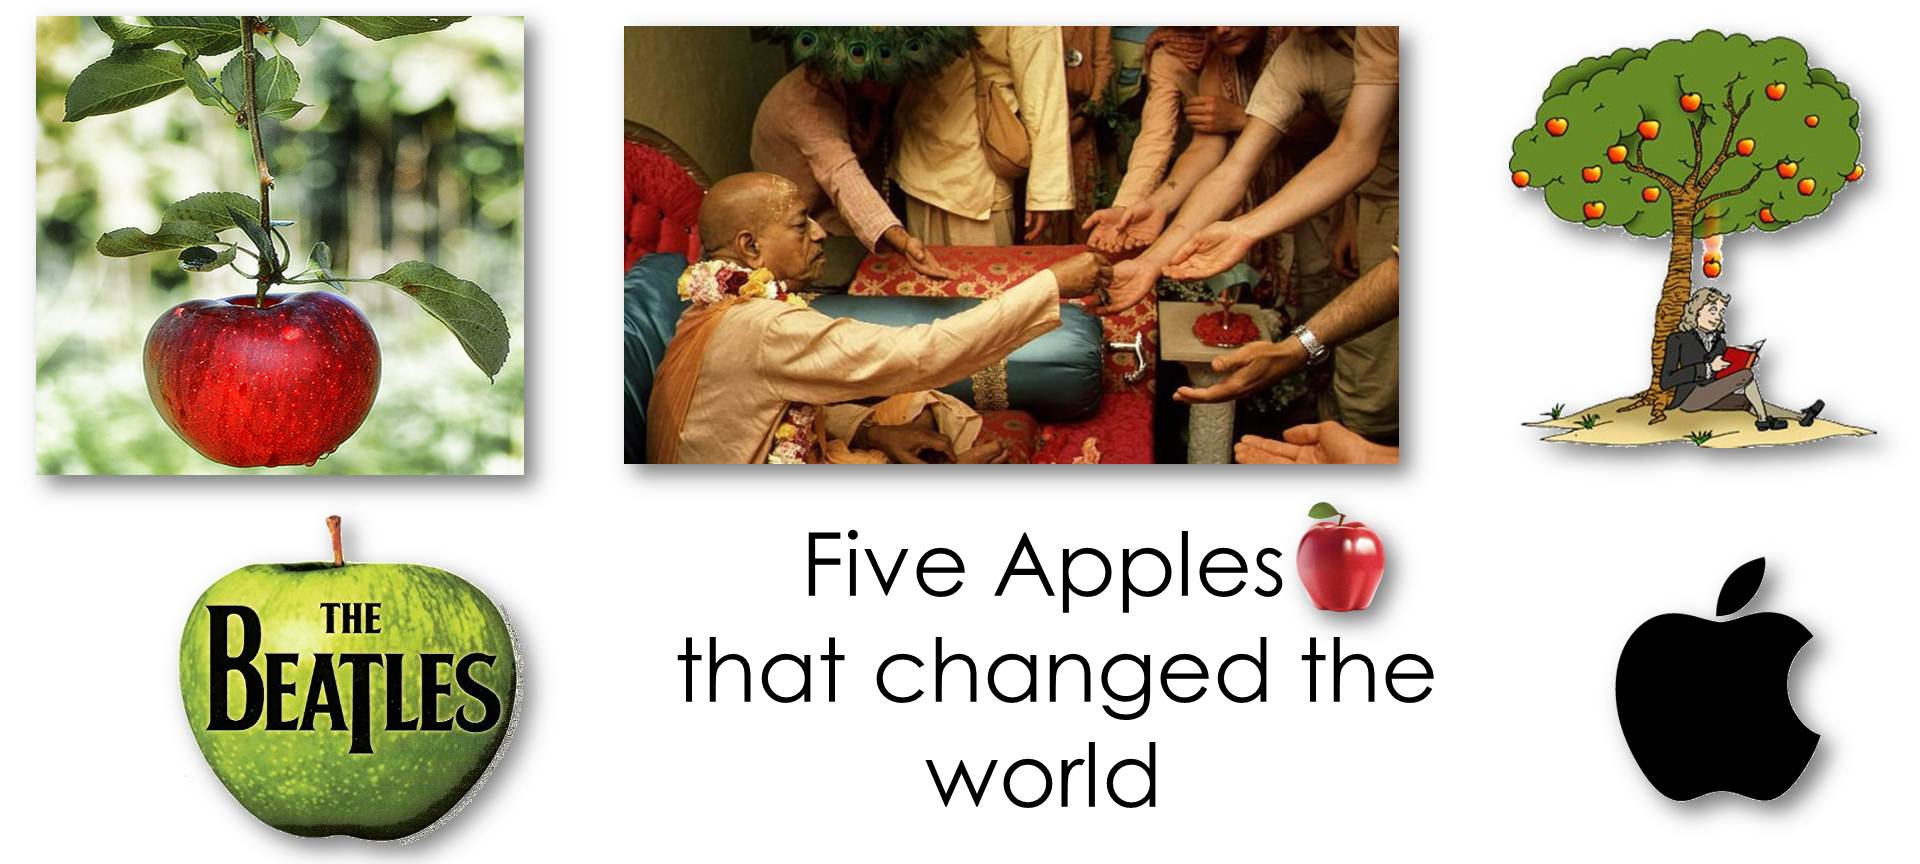 Five Apples that changed the world